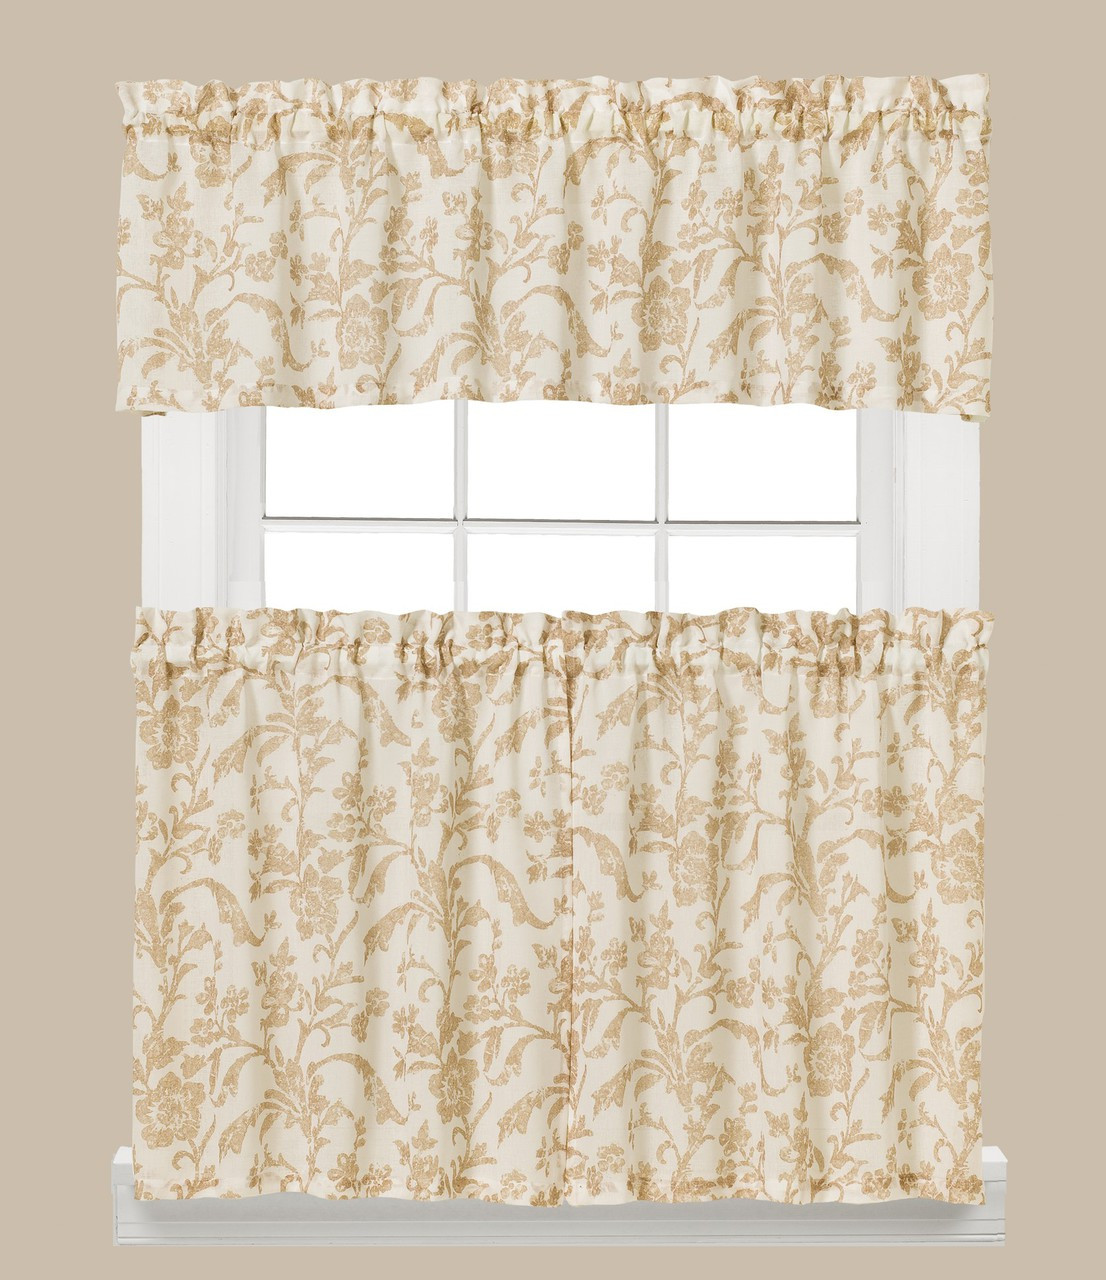 New Kitchen Curtains For Less: Melissa Floral Kitchen Curtain